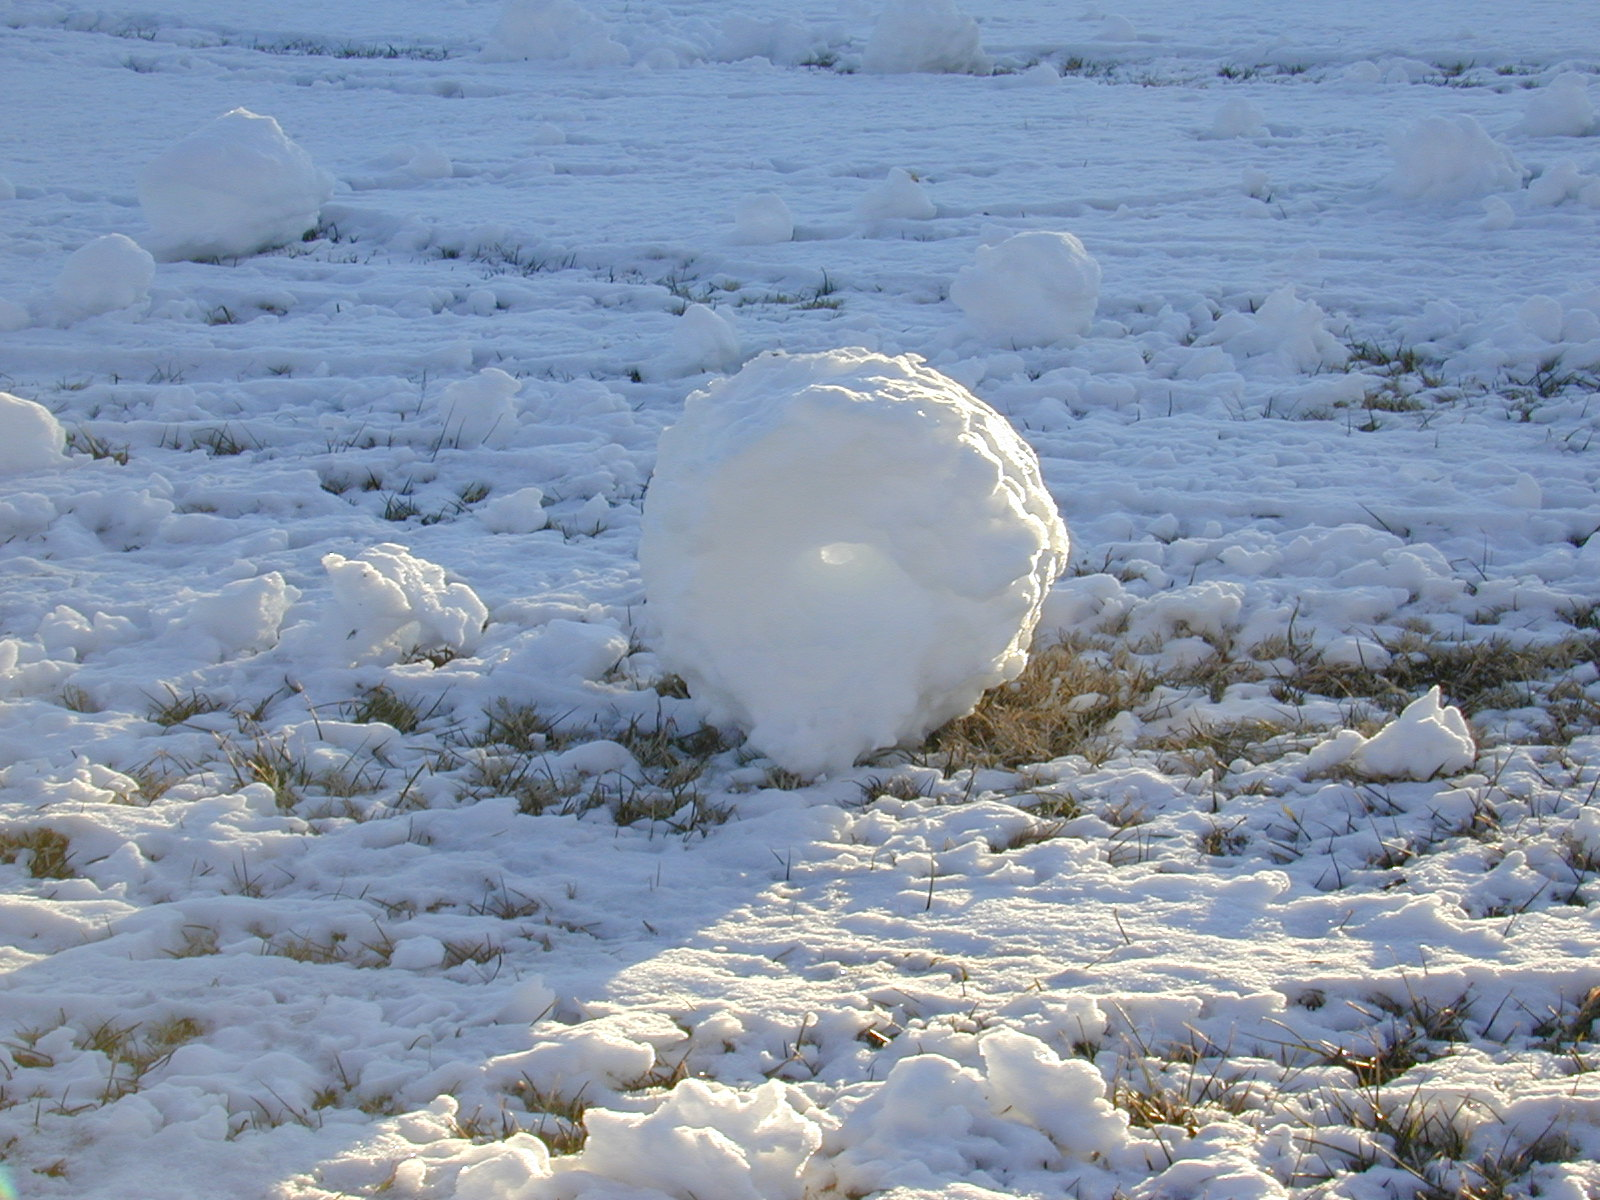 Snow Rollers, February 2003